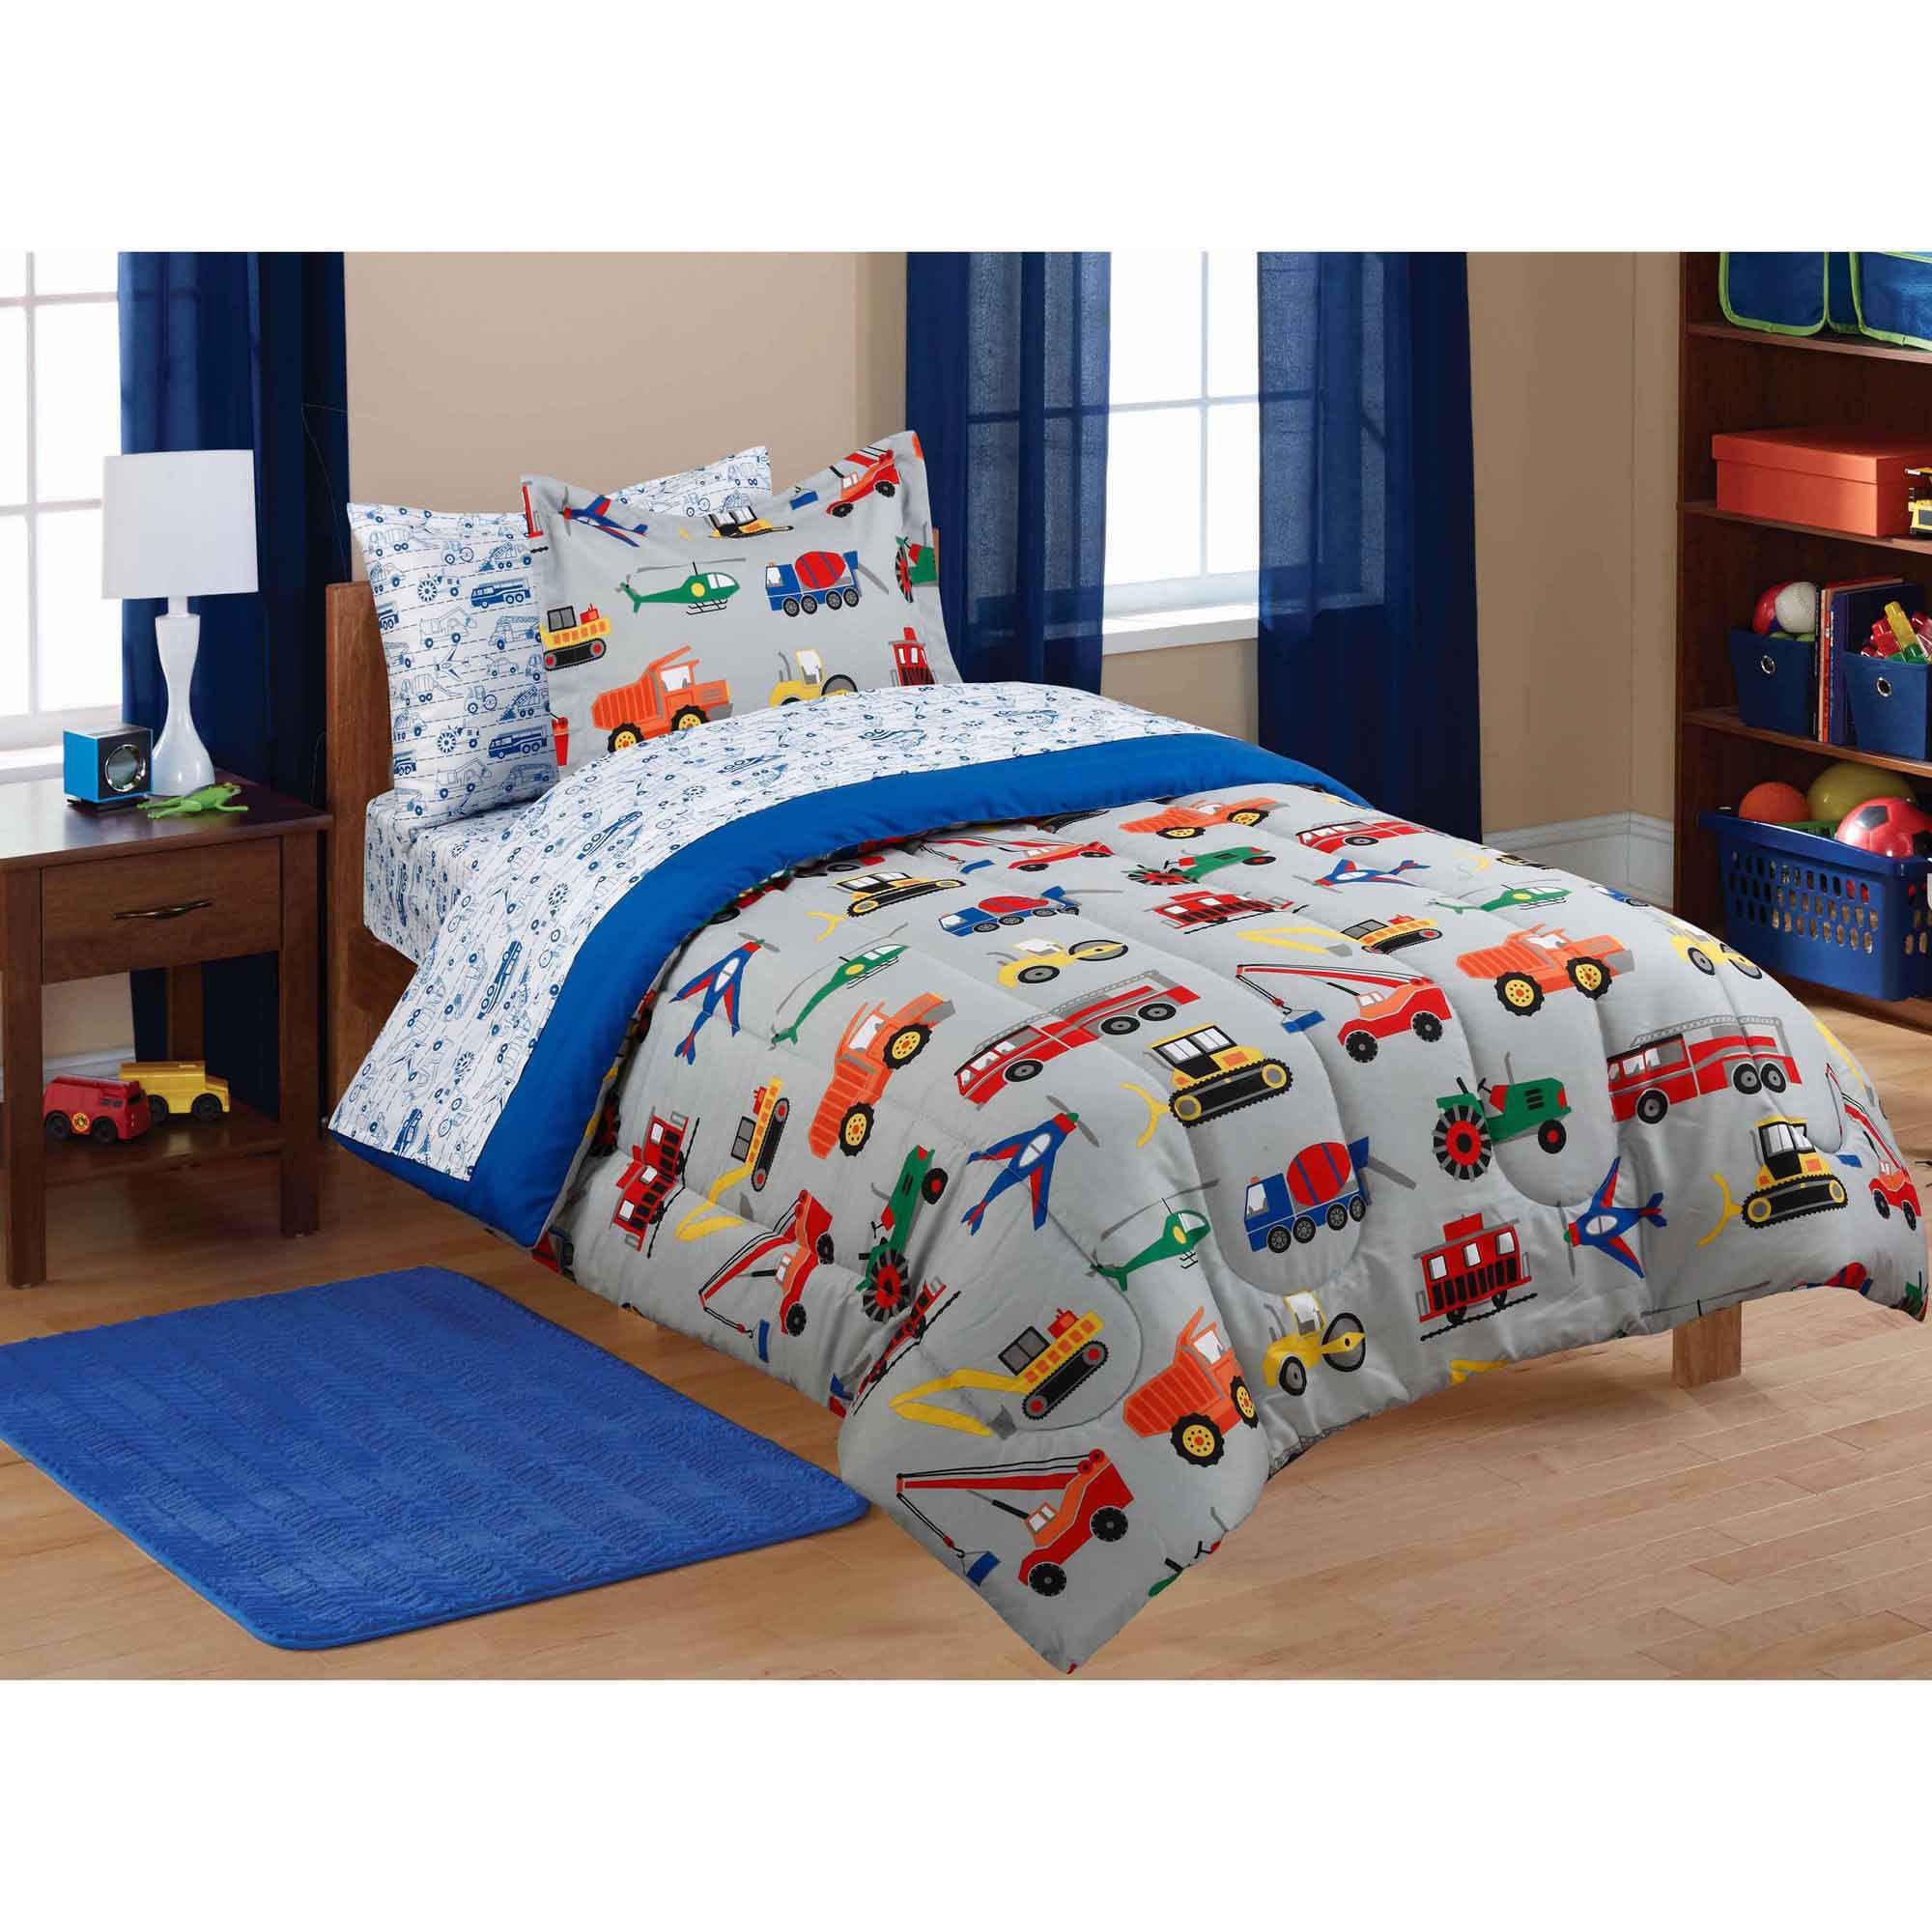 Children Bedroom Sets Cheap 83 Picture Collection Website Mainstays Kids